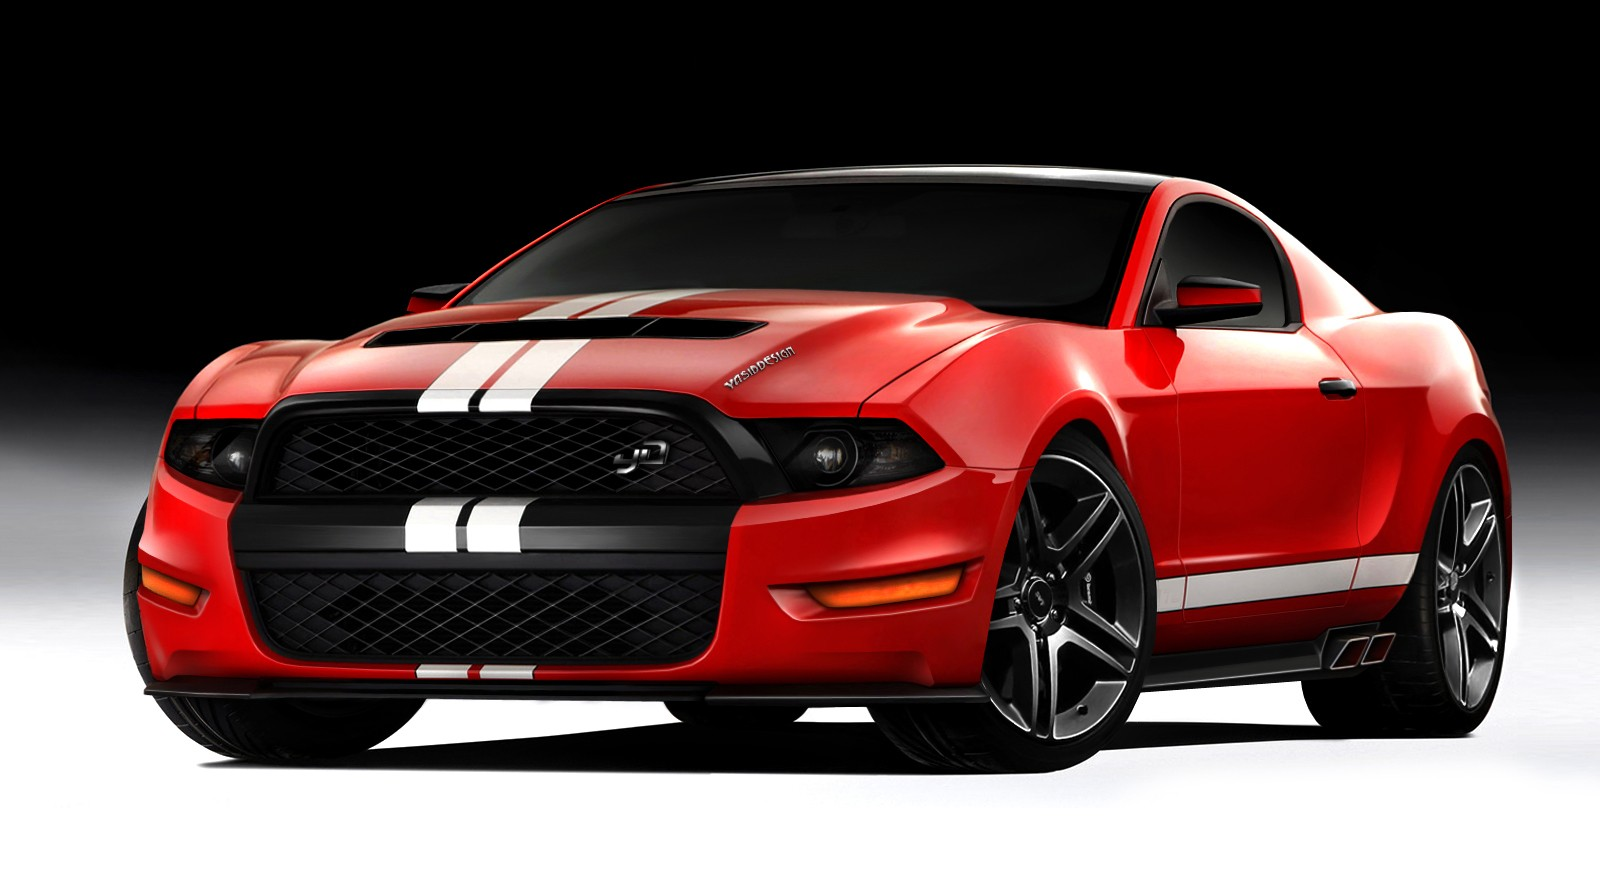 2014 Ford Mustang #5